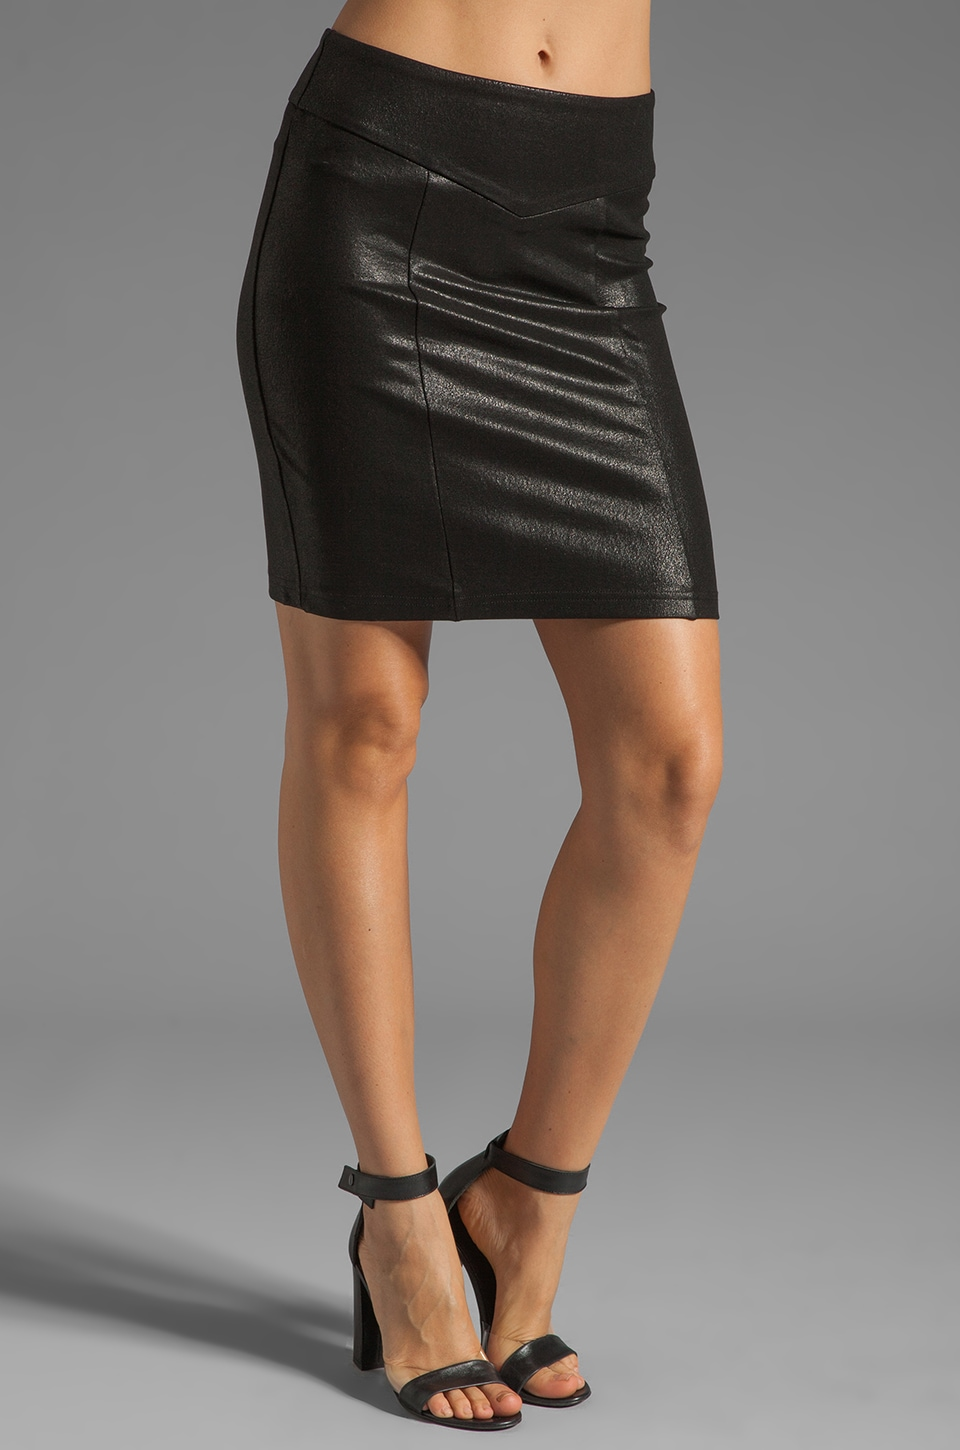 krisa Coated Pencil Skirt in Black